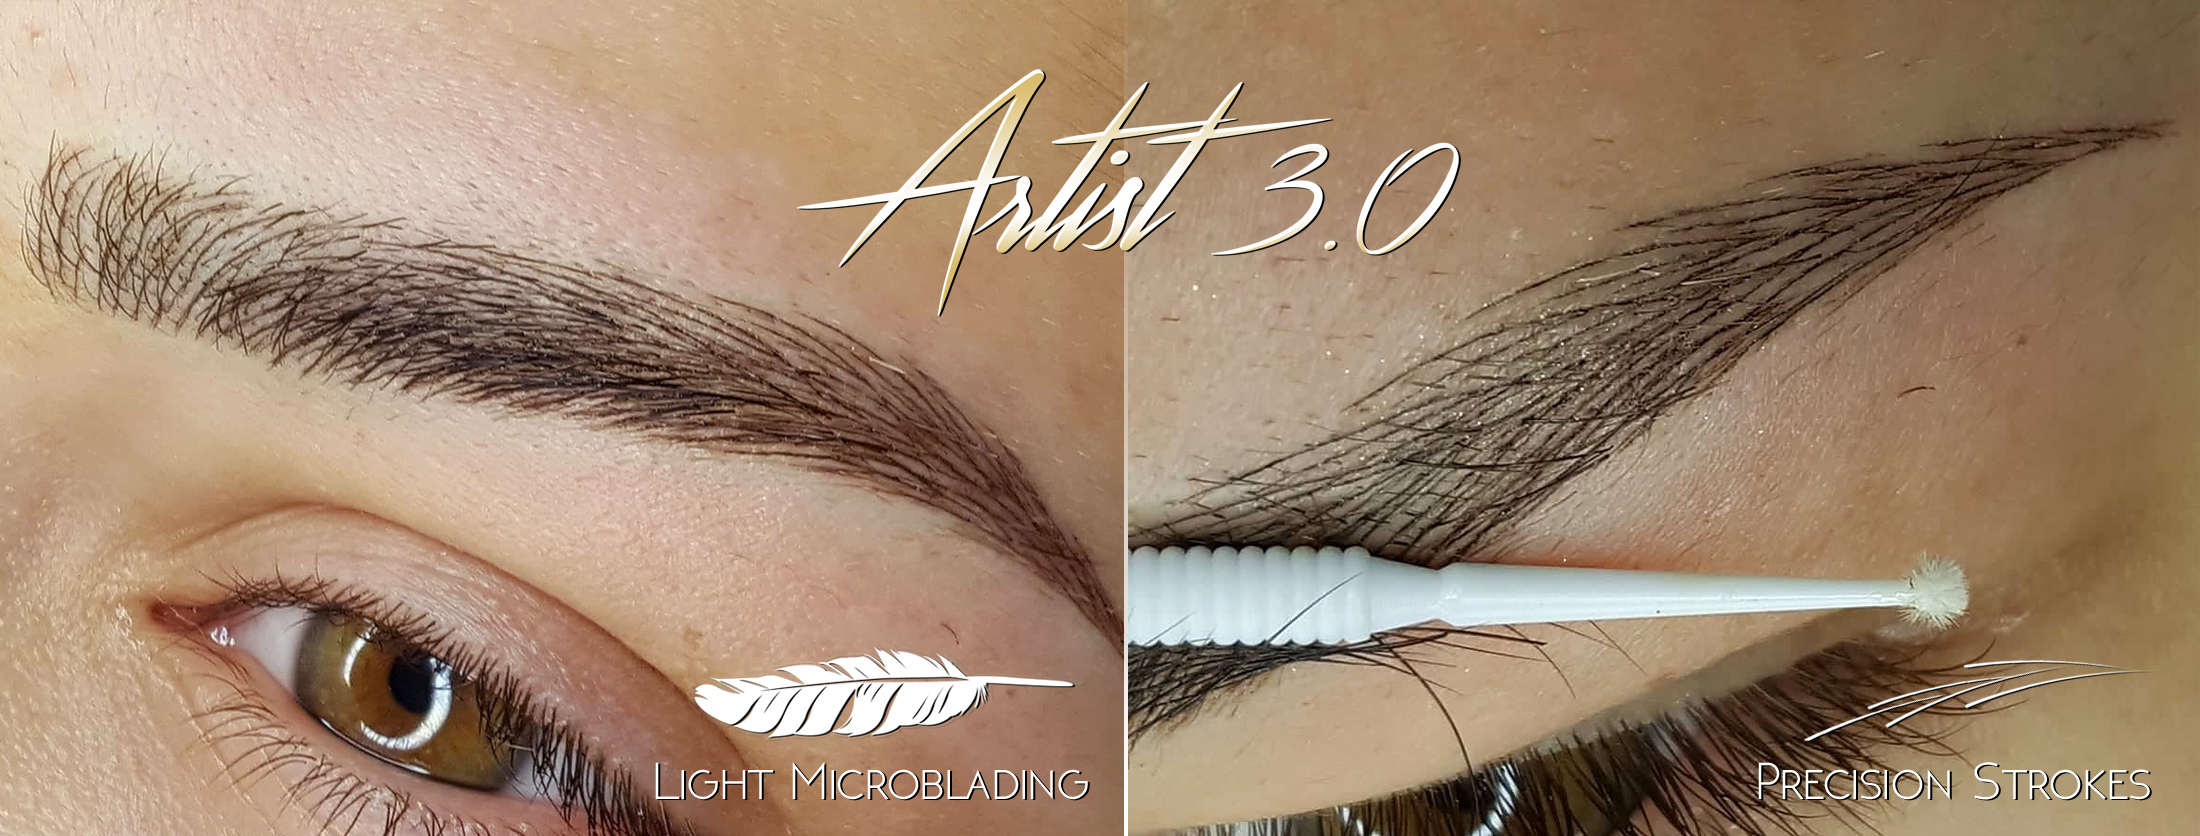 Light microblading and Precision Strokes ⓒ technique allows to achieve results where strokes are undetectable from real hair. That is the gold-standard of nowadays modern microblading and represents what should be the ultimate goal of every artist. In many cases both brows are modified separately completely based on natural human hair growth using the SharpBrows Master Portfolio stoke-pattern selection. The results are so natural that often even professionals can not detect that microblading has been done to the client no matter the distance from which the result is examined.